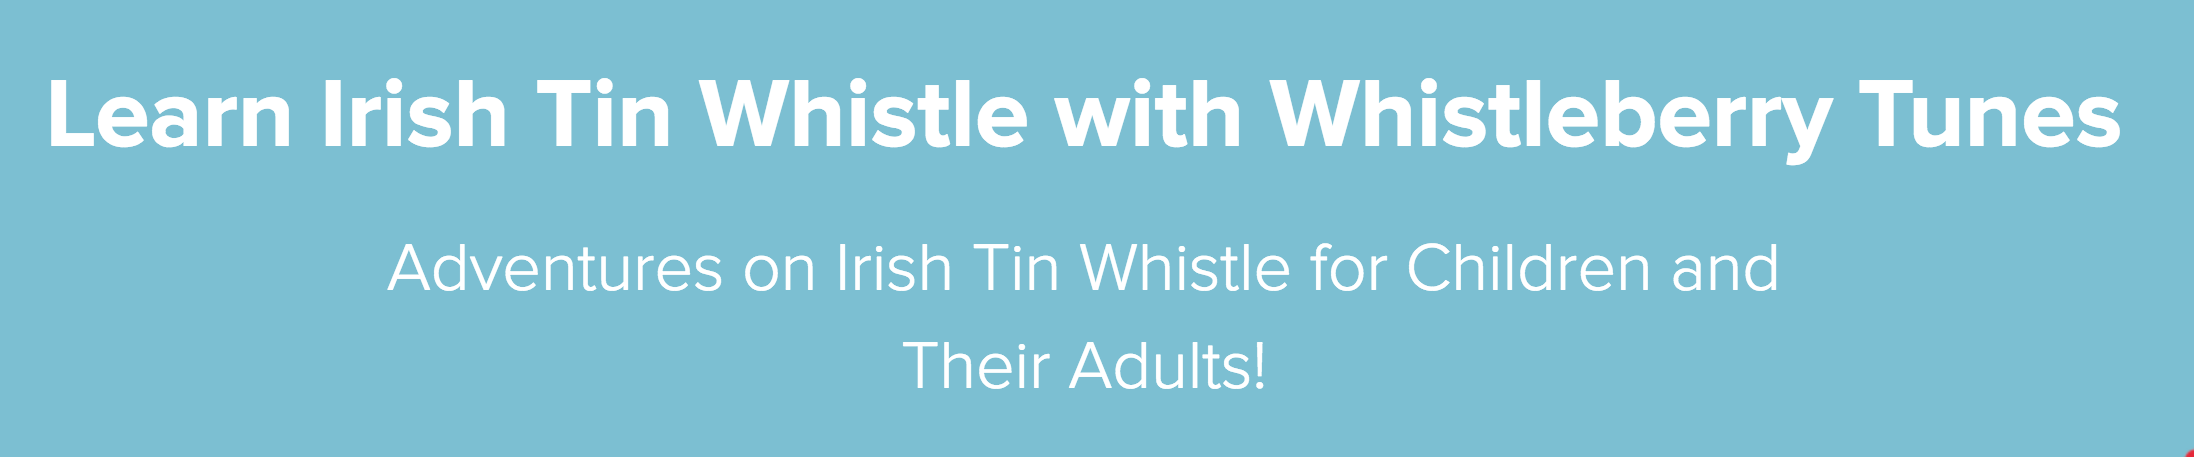 Learn Tin Whistle